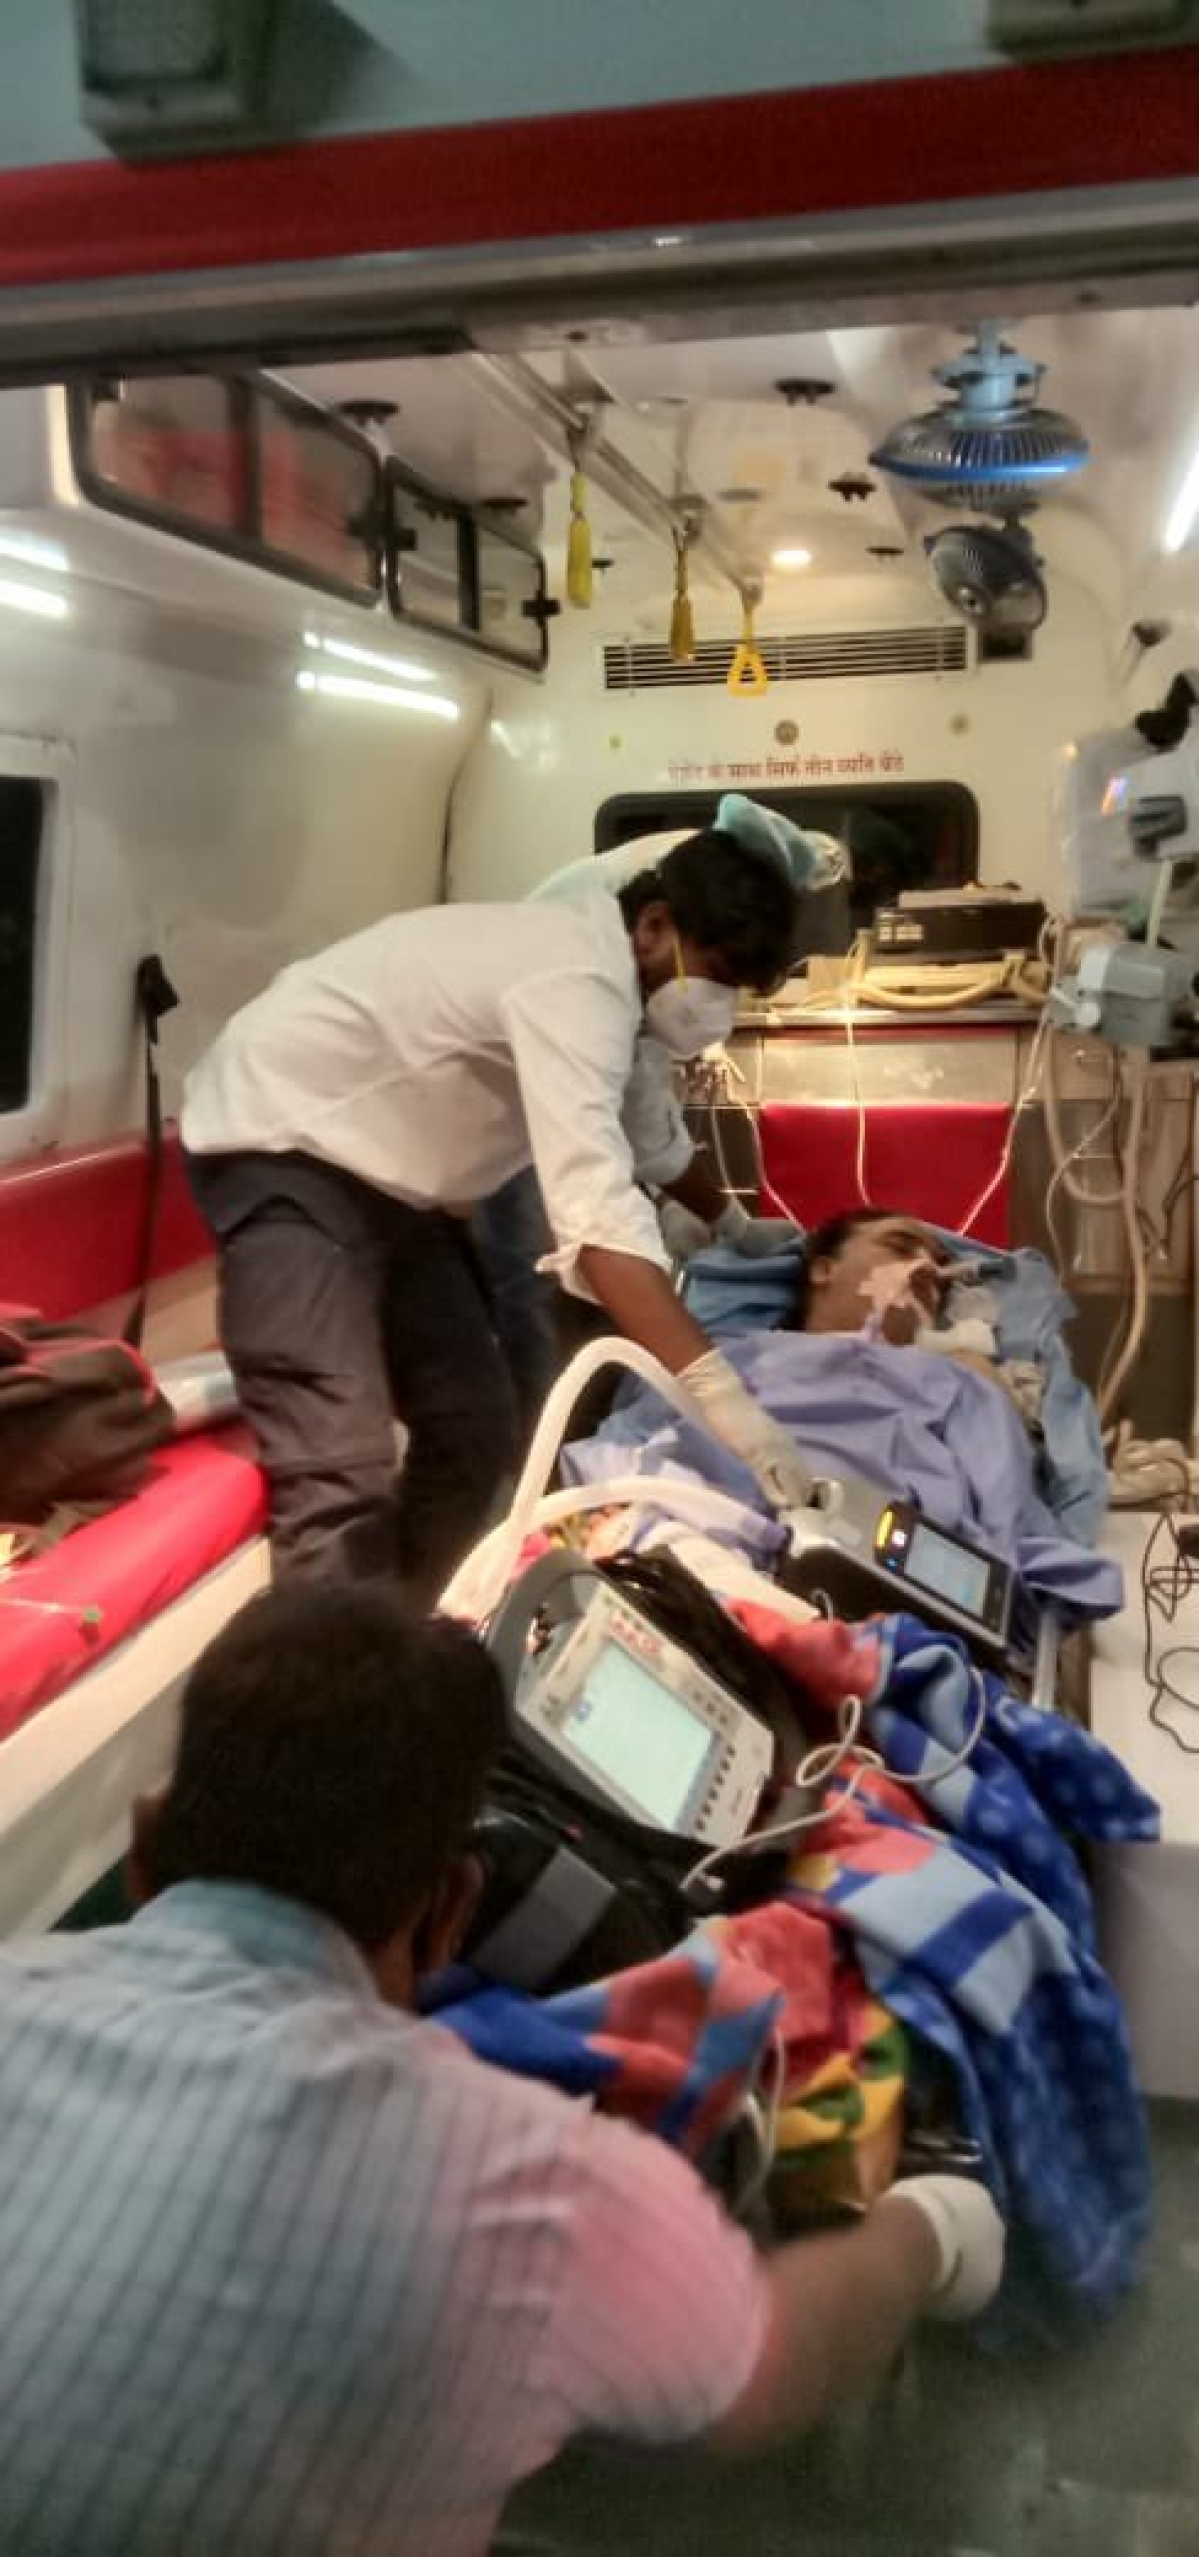 Madhya Pradesh: Covid-positive pulmonologist airlifted to Hyderabad